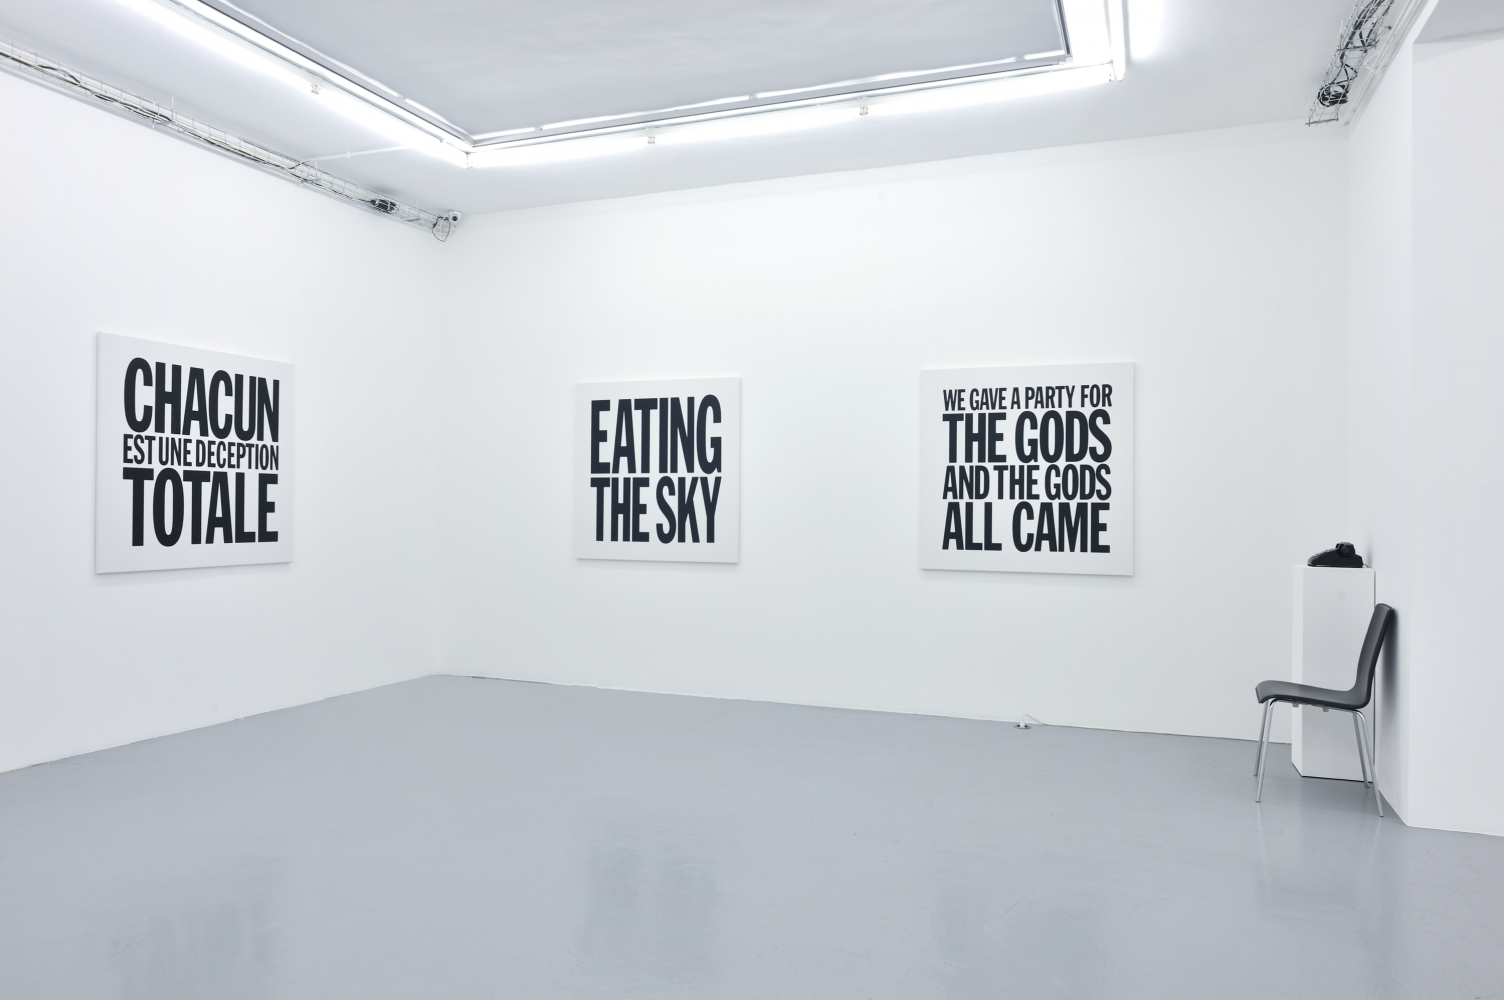 Installation view of John Giorno's Paintings at Almine Rech Gallery, 2012